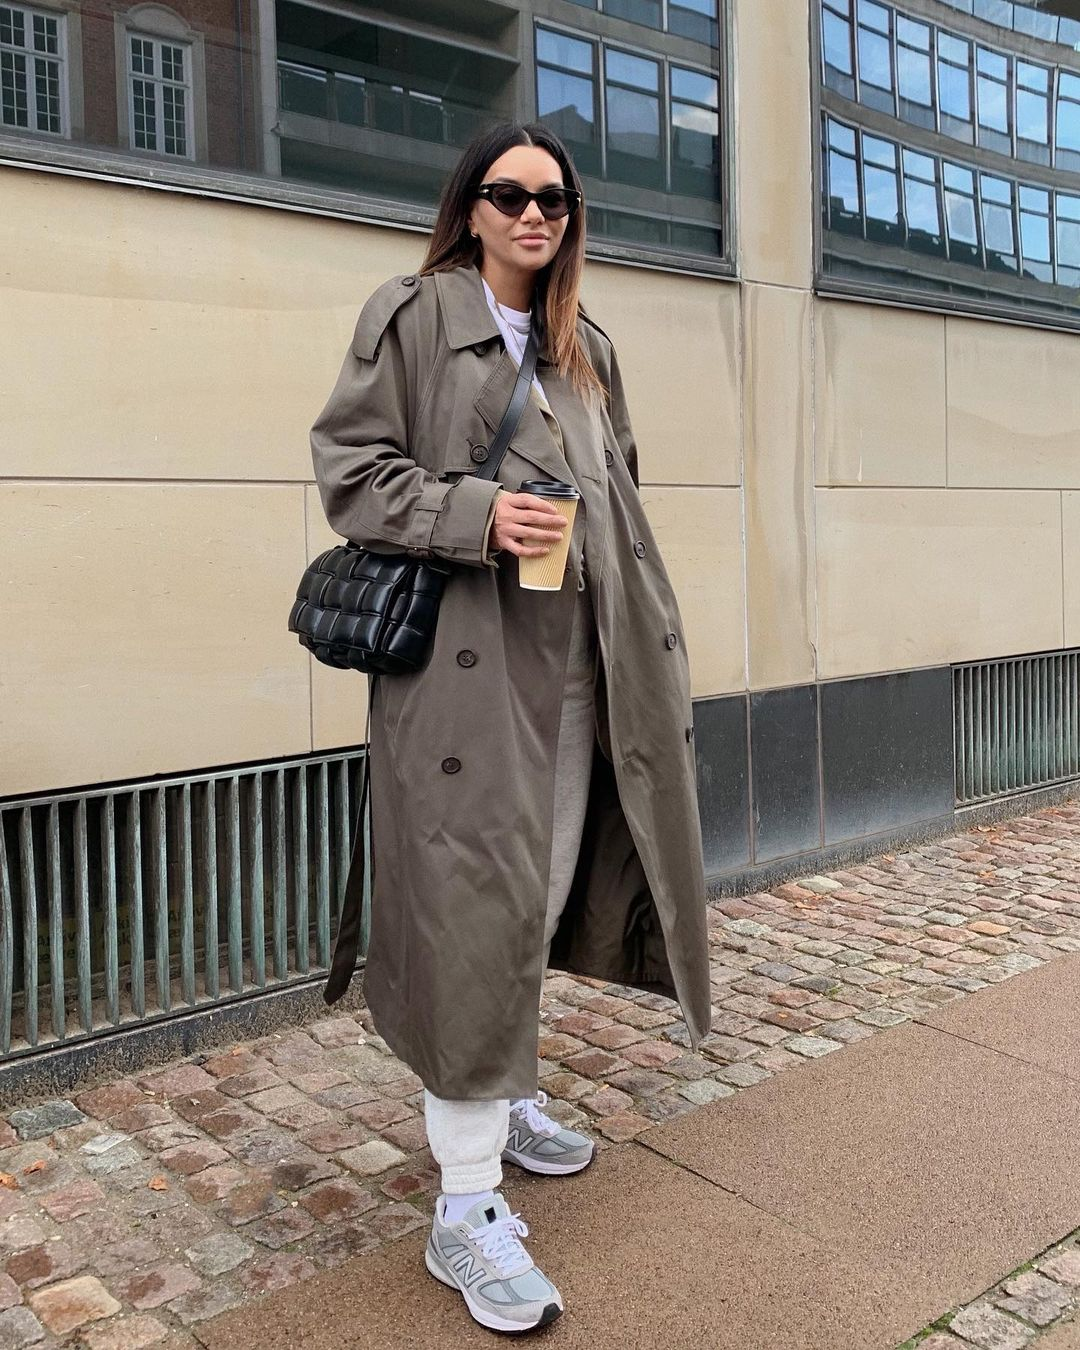 funda-christophersen-vintage-trench-outfit-instagram